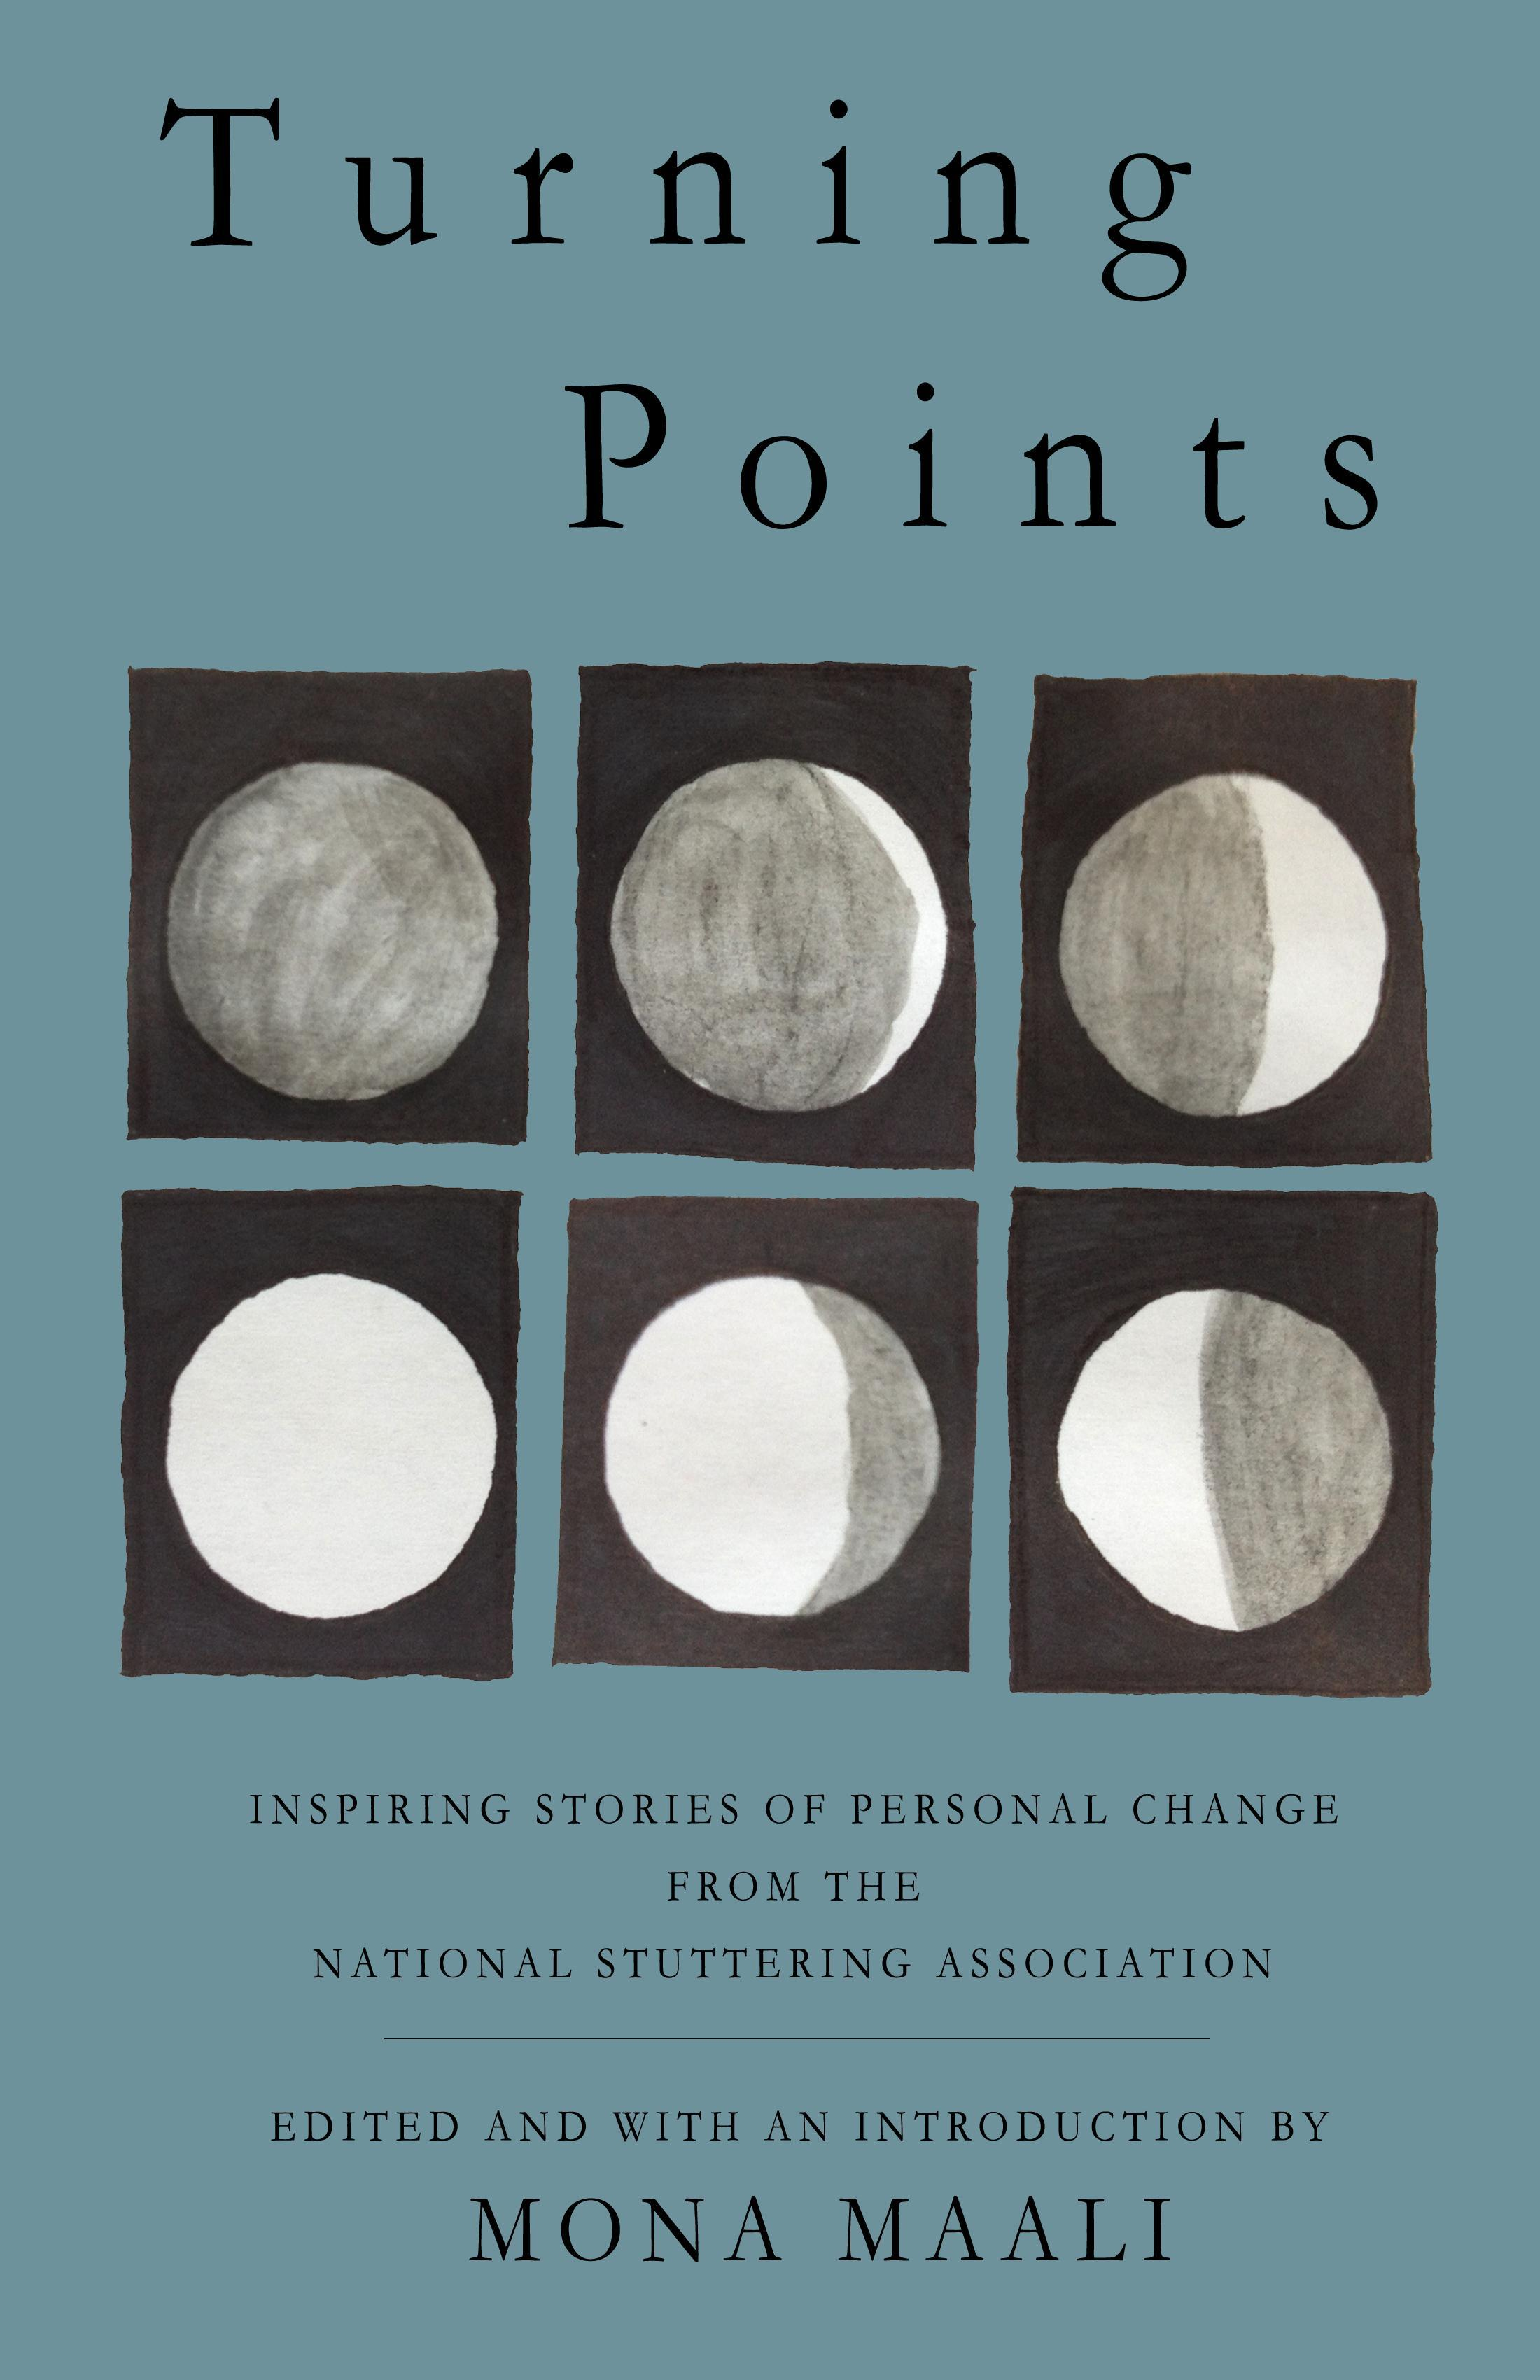 Turning Points: Inspiring Stories of Personal Change from the Natl Stuttering Association Mona Maali